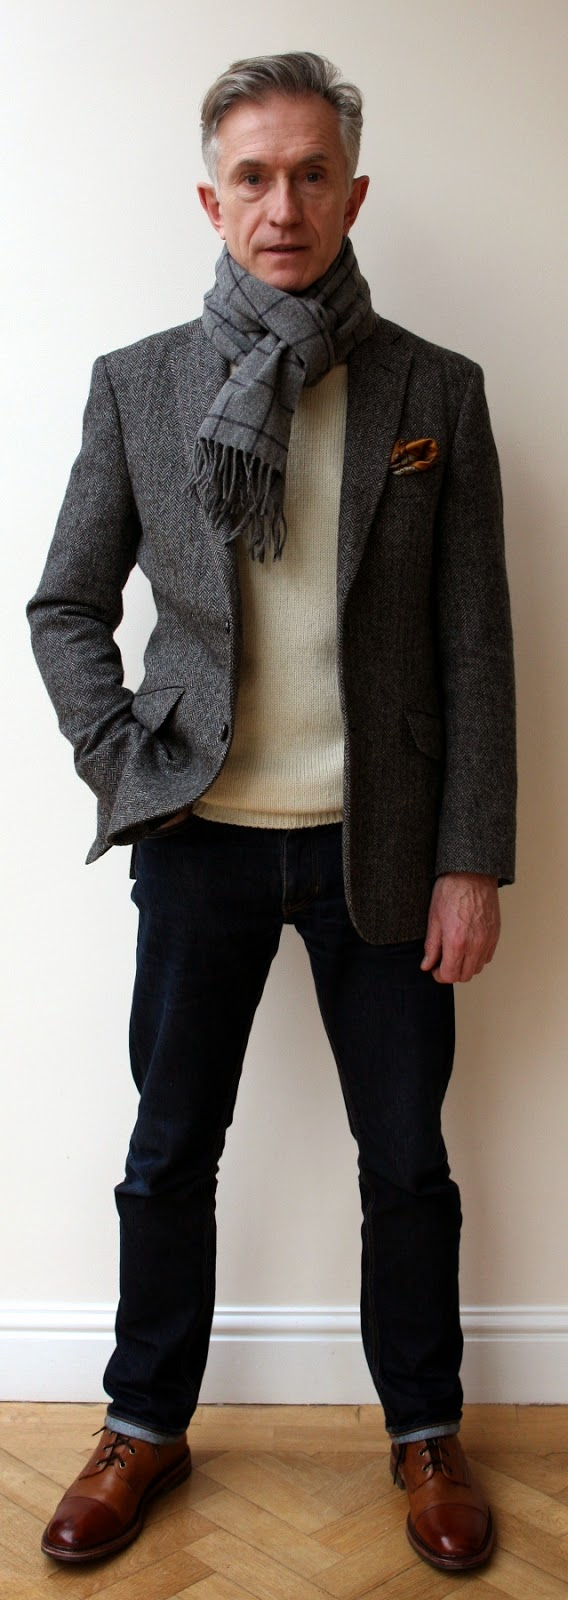 Grey Fox: One jacket - five styles. Making full use of your ...